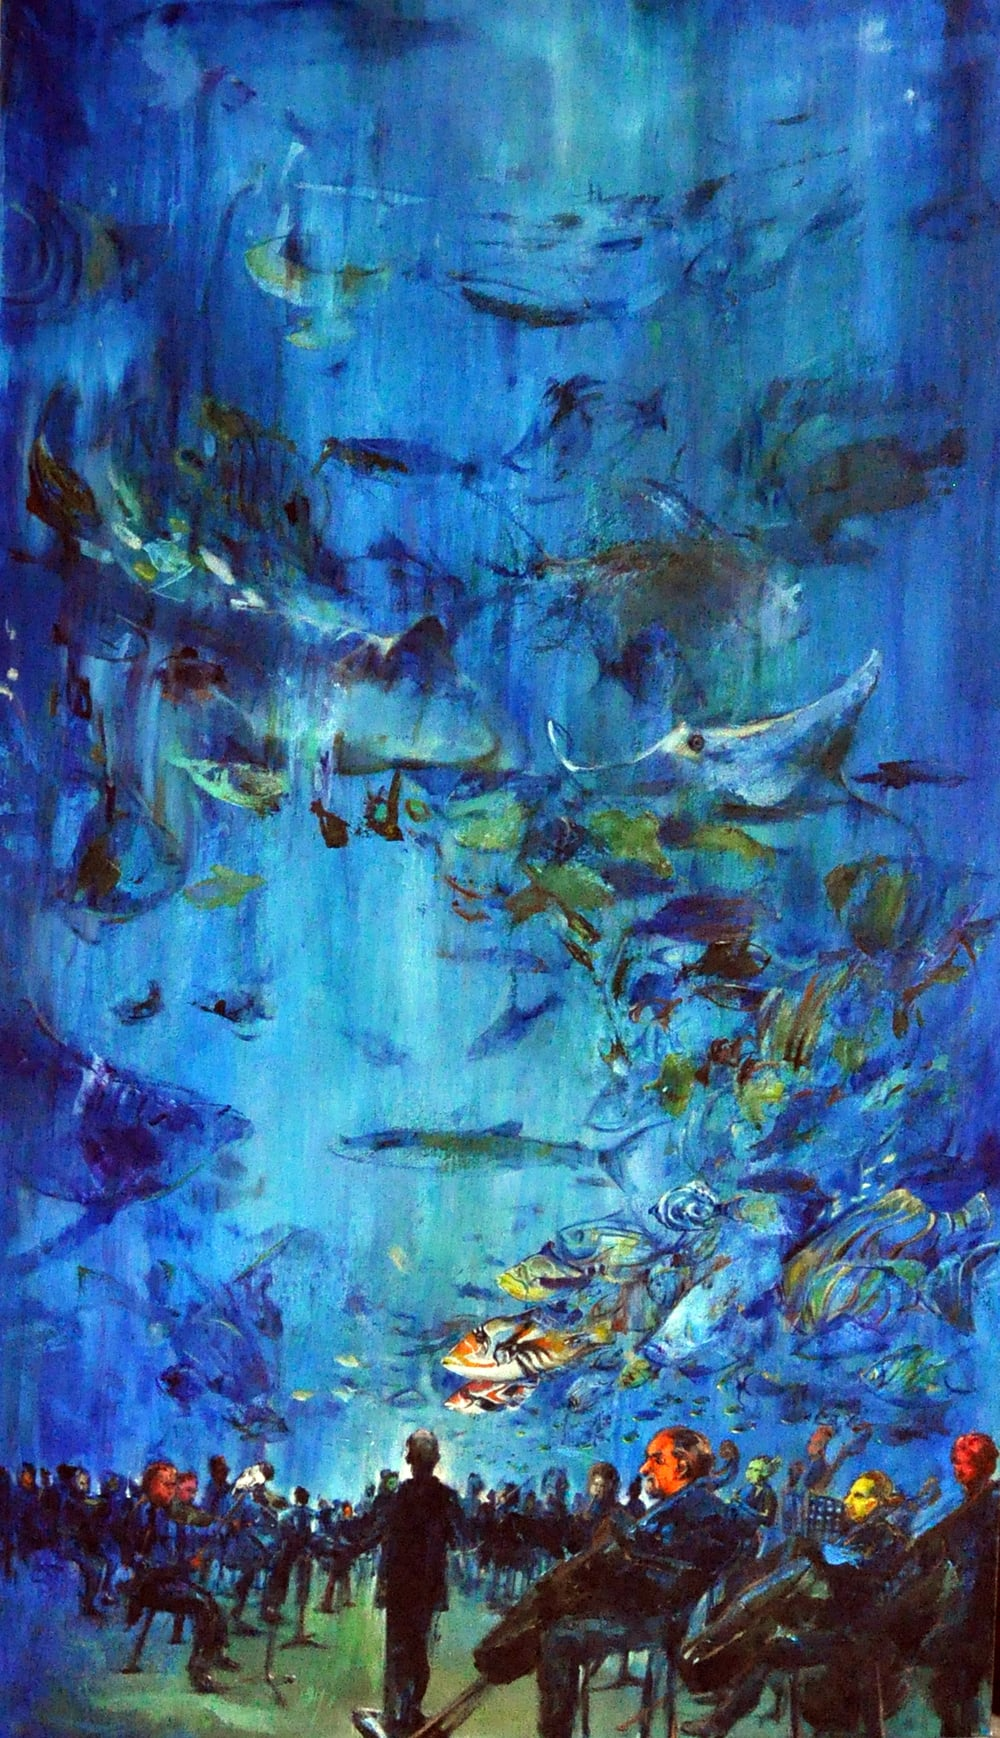 7-sounds-of-paridise-28x48in-oil-canvas-2015.jpg